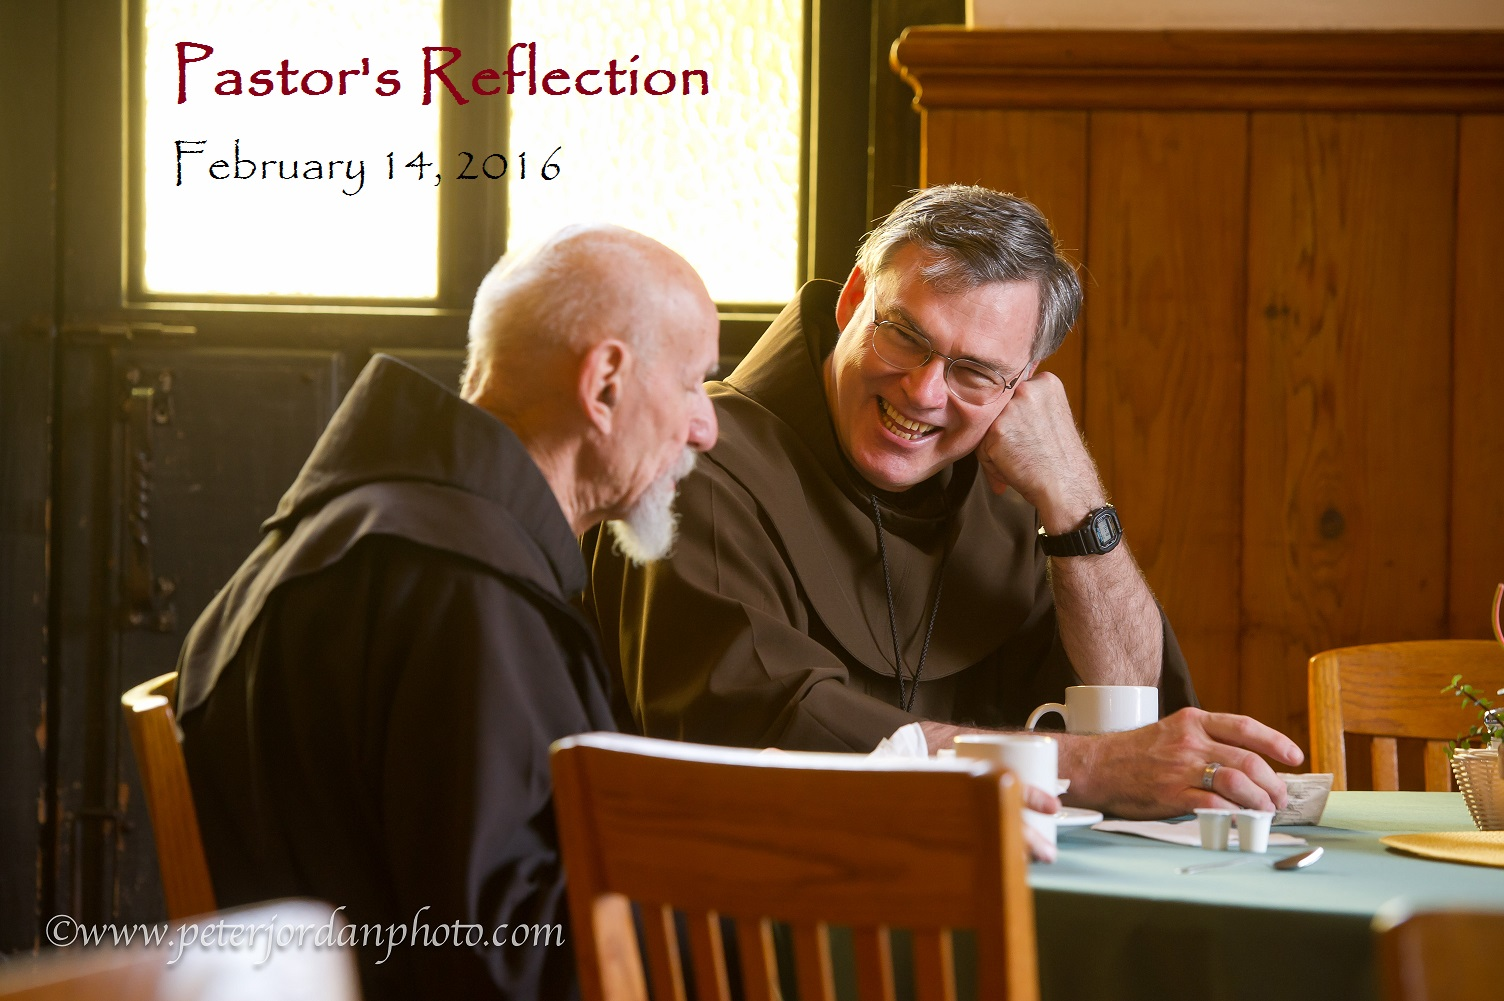 Pastor's Reflection